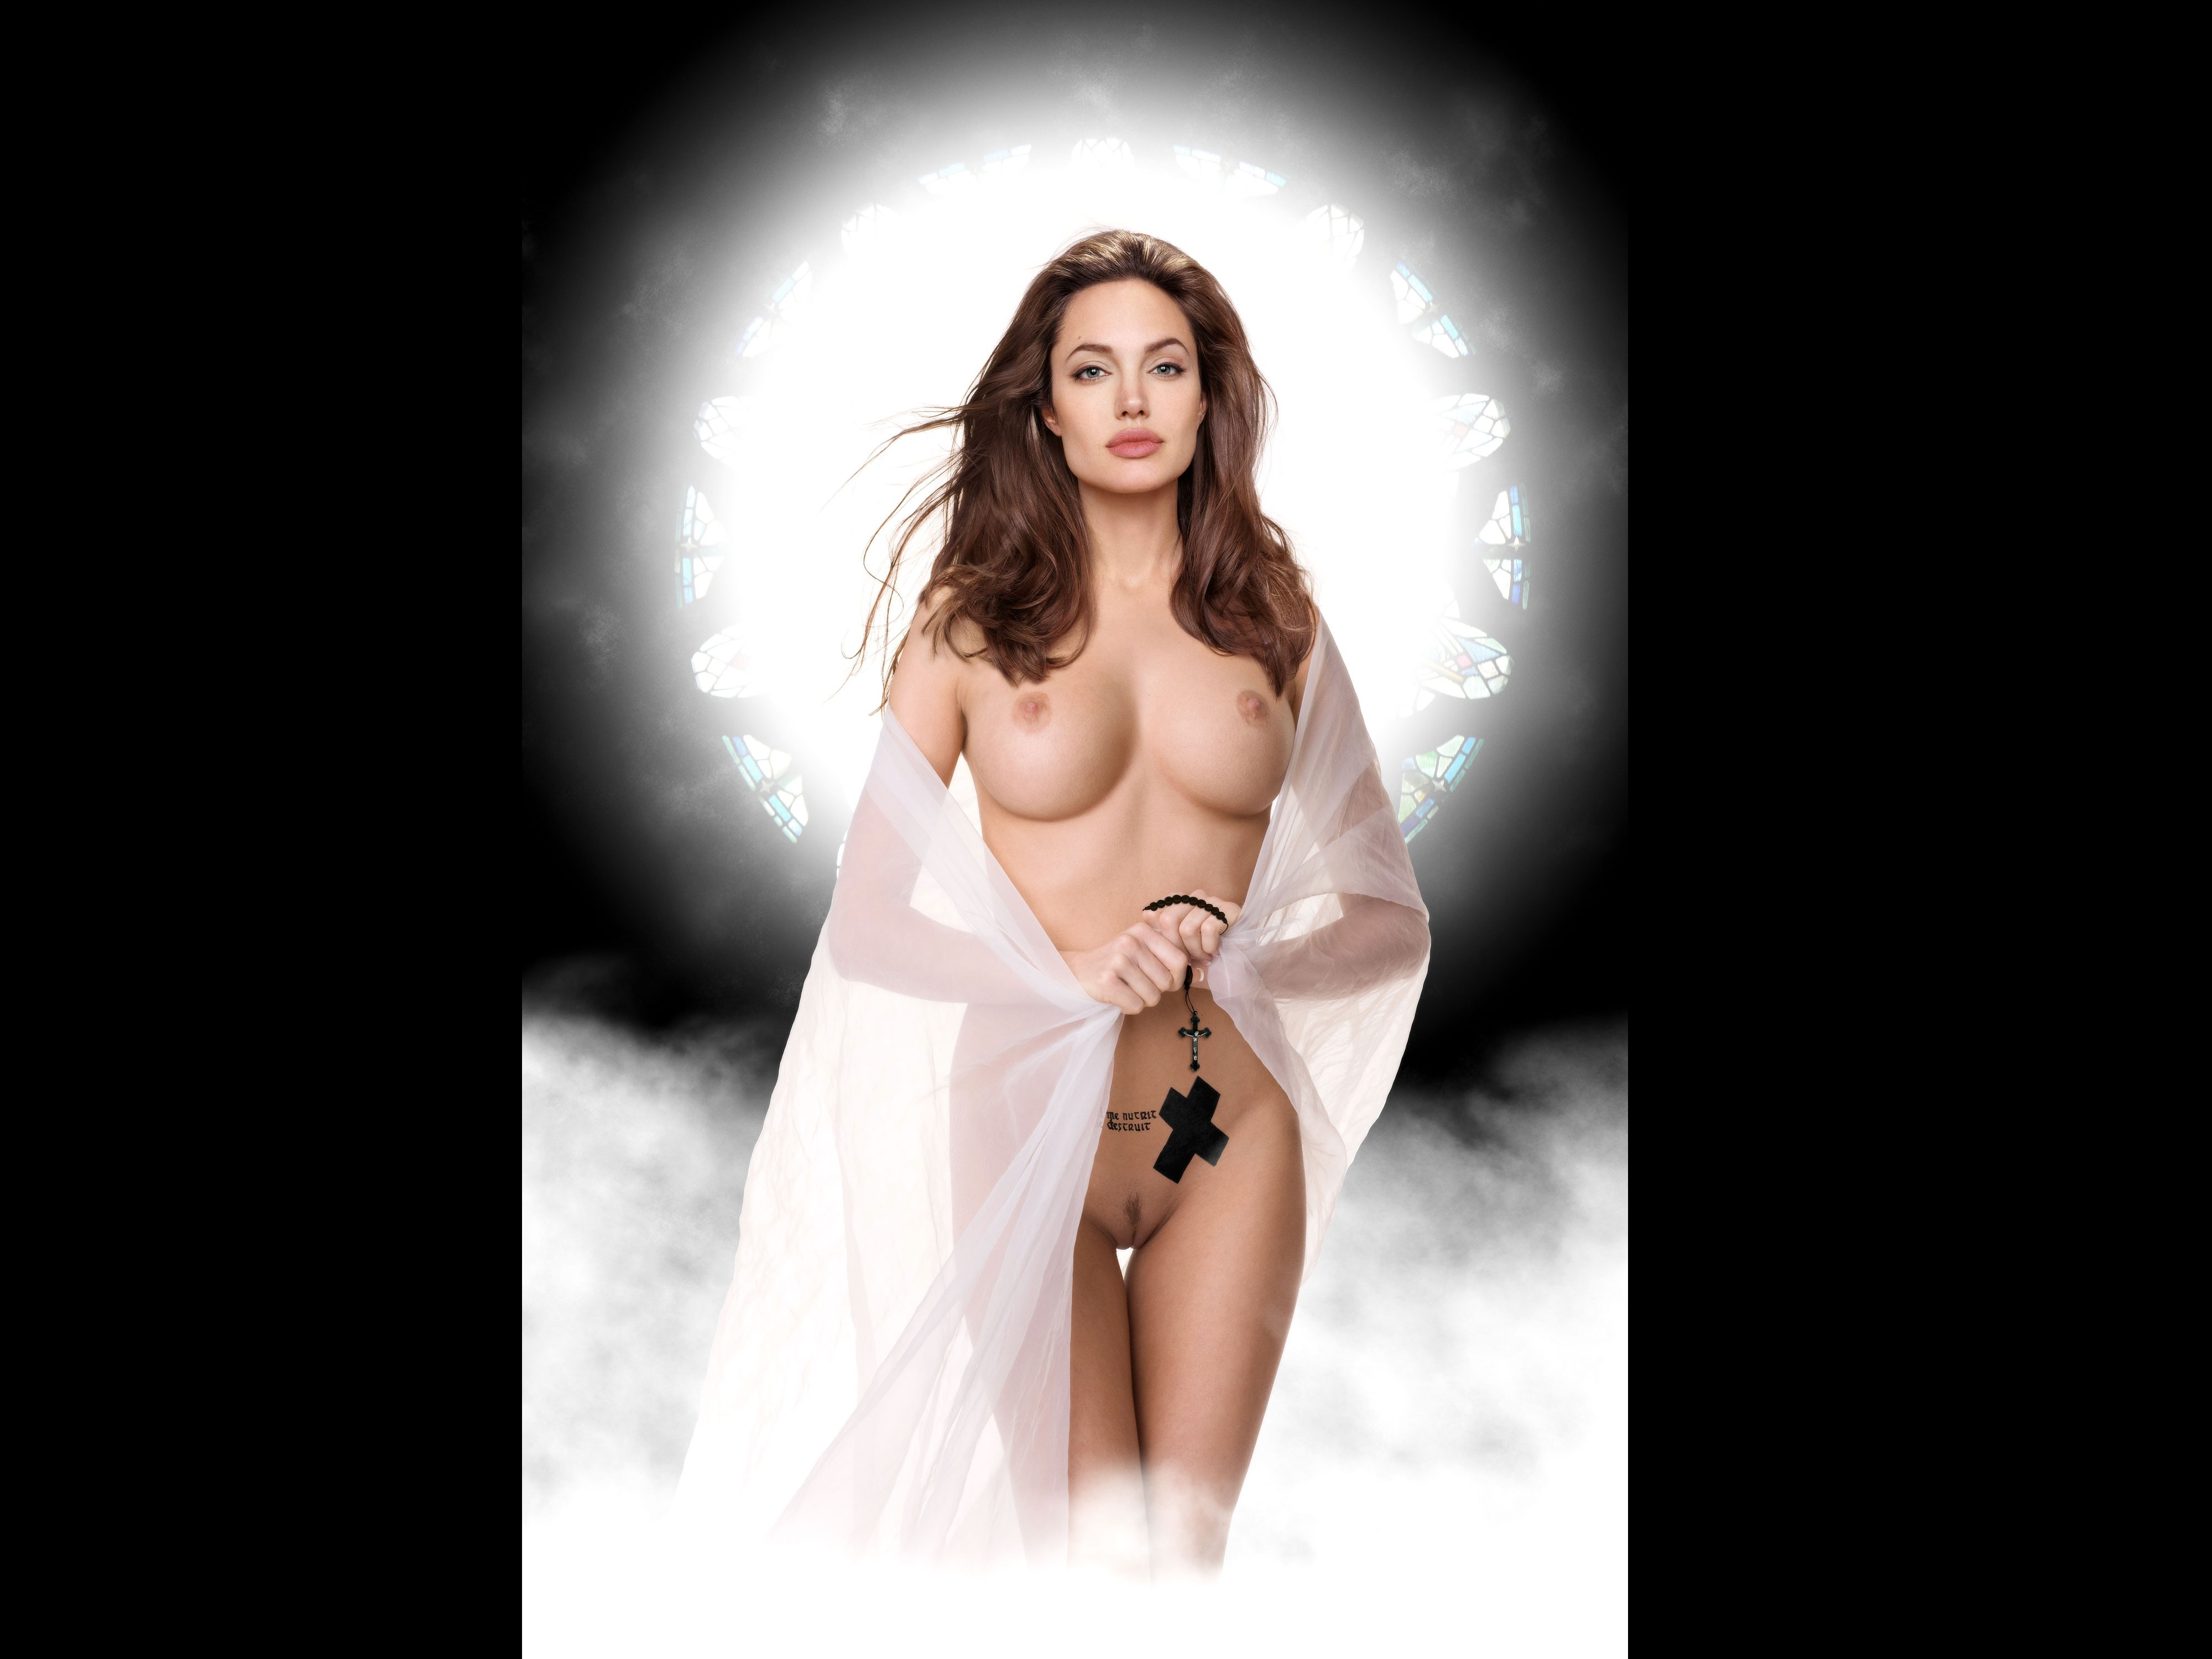 Naked women in robes porn